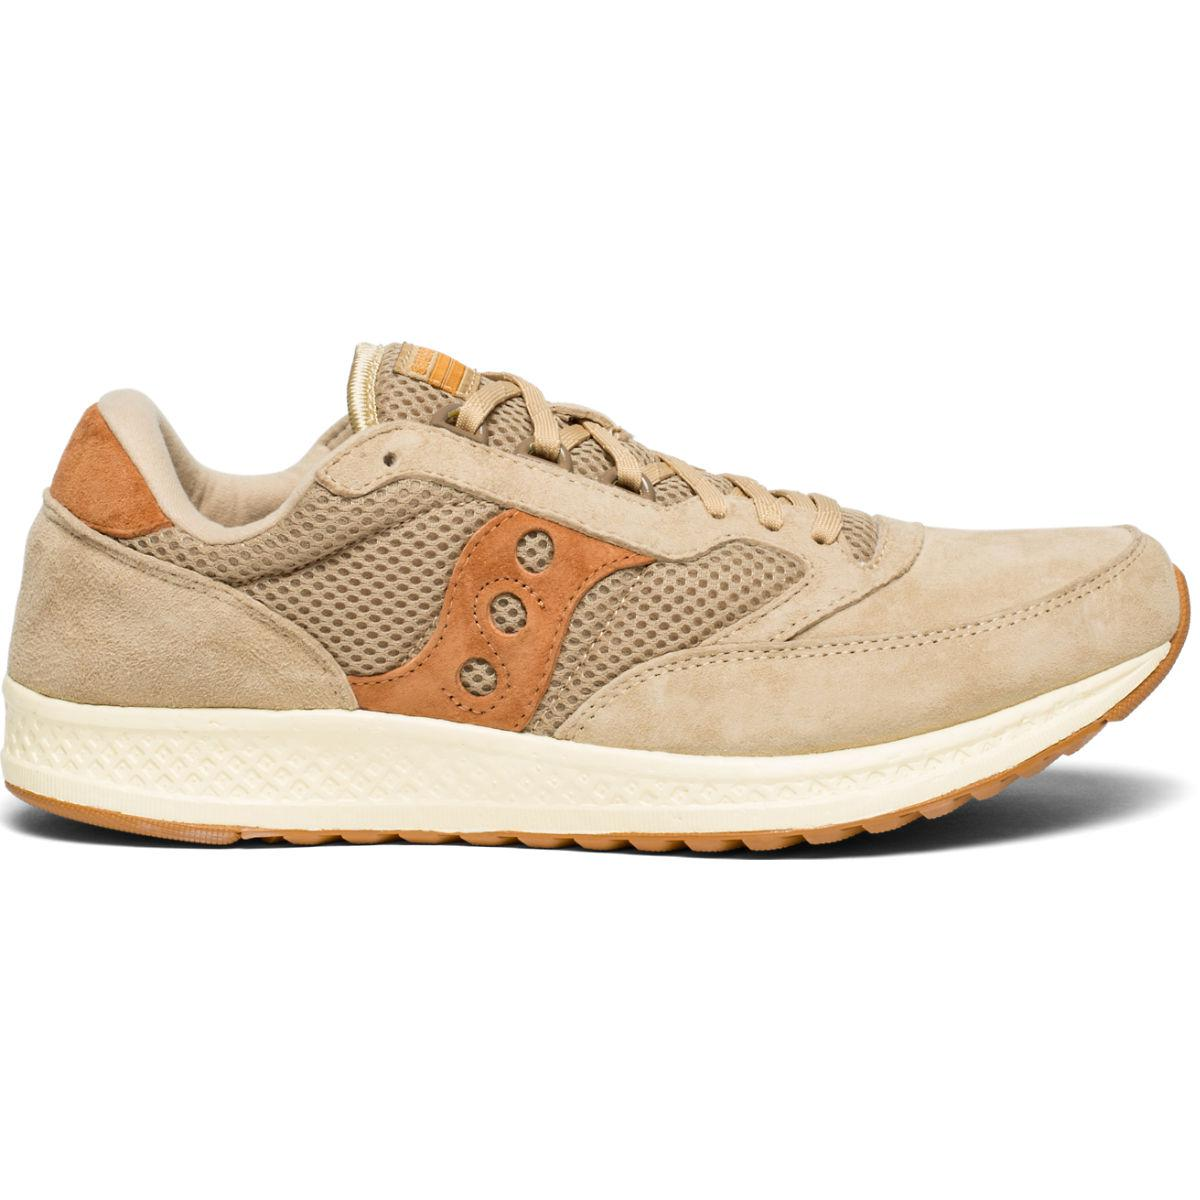 7a501ee098 Saucony - Multicolor Freedom Runner for Men - Lyst. View fullscreen